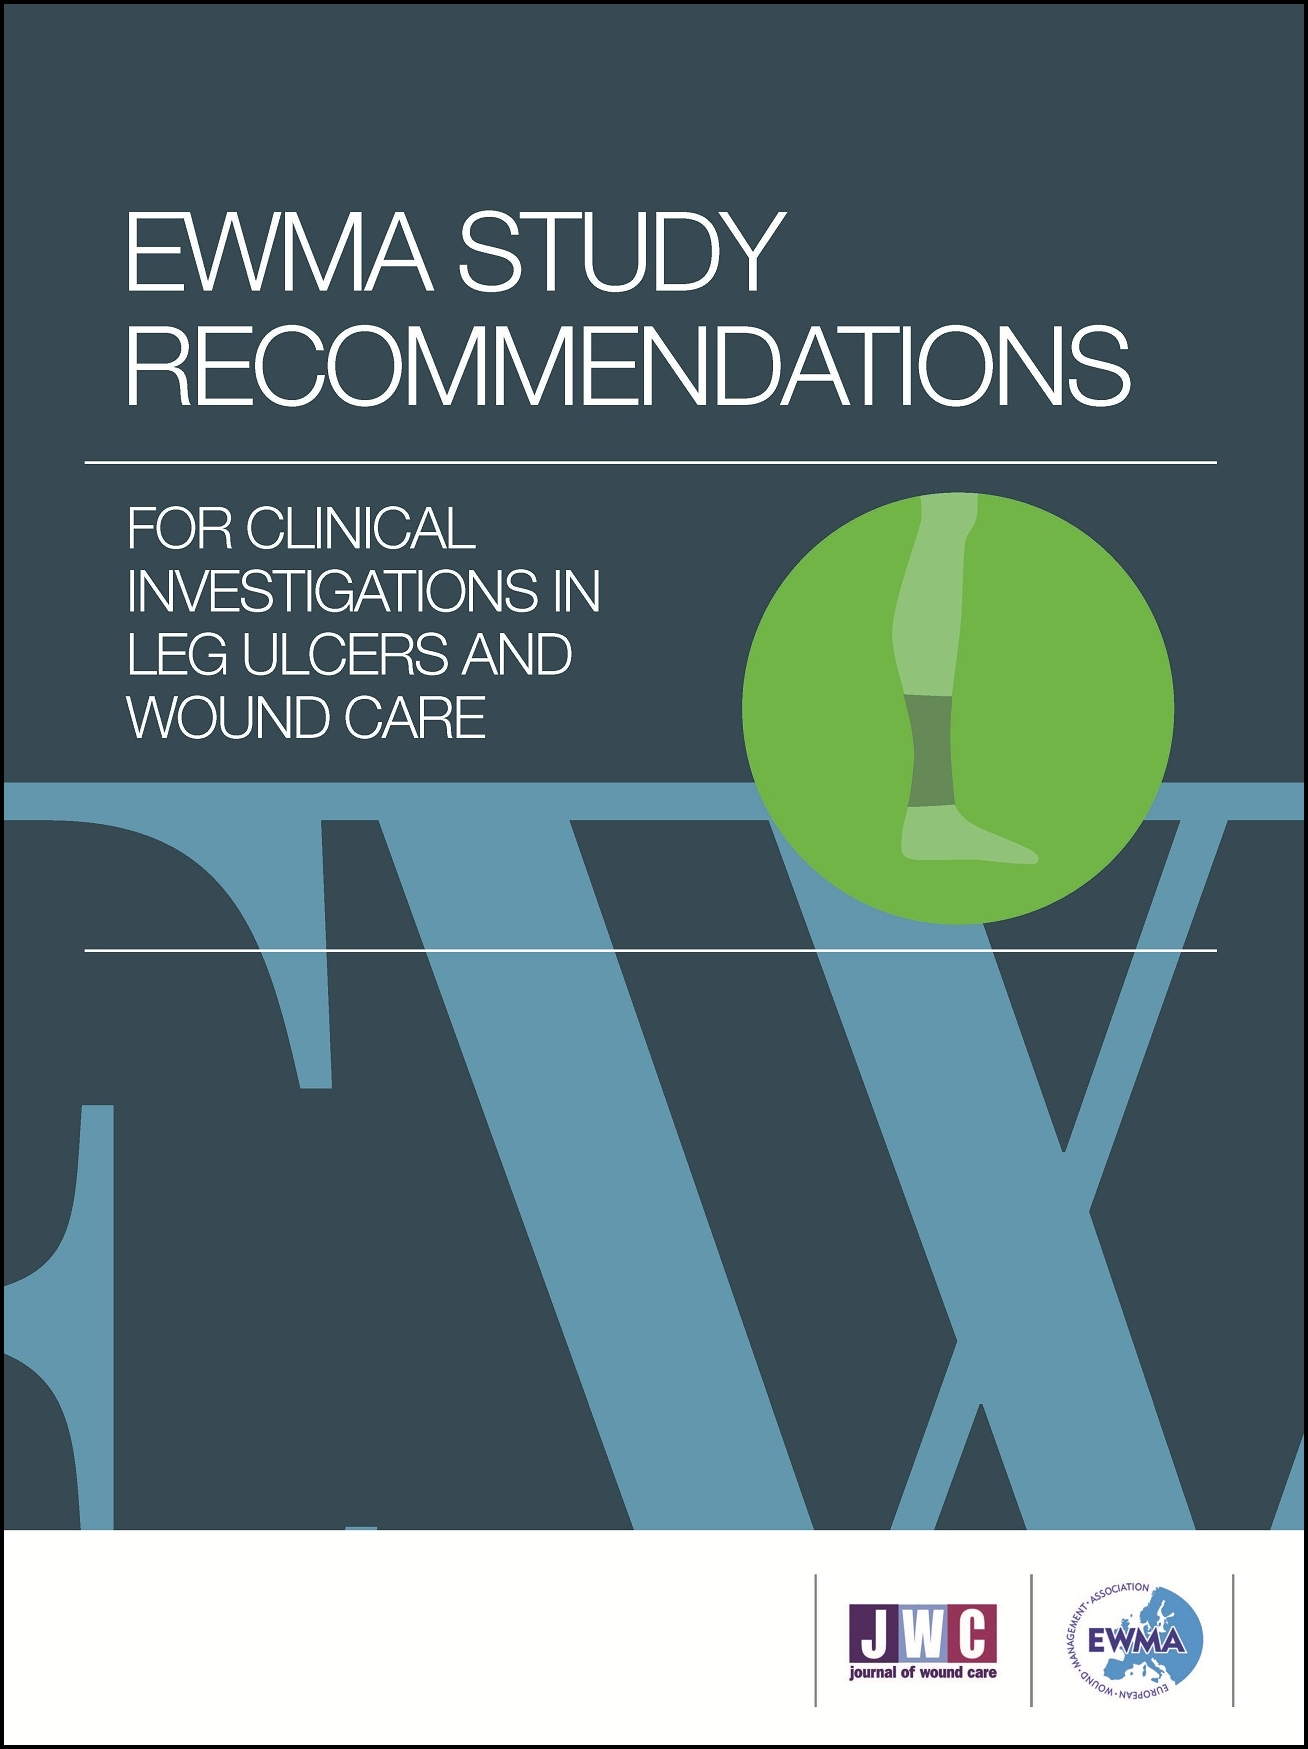 EWMA Study Recommendations